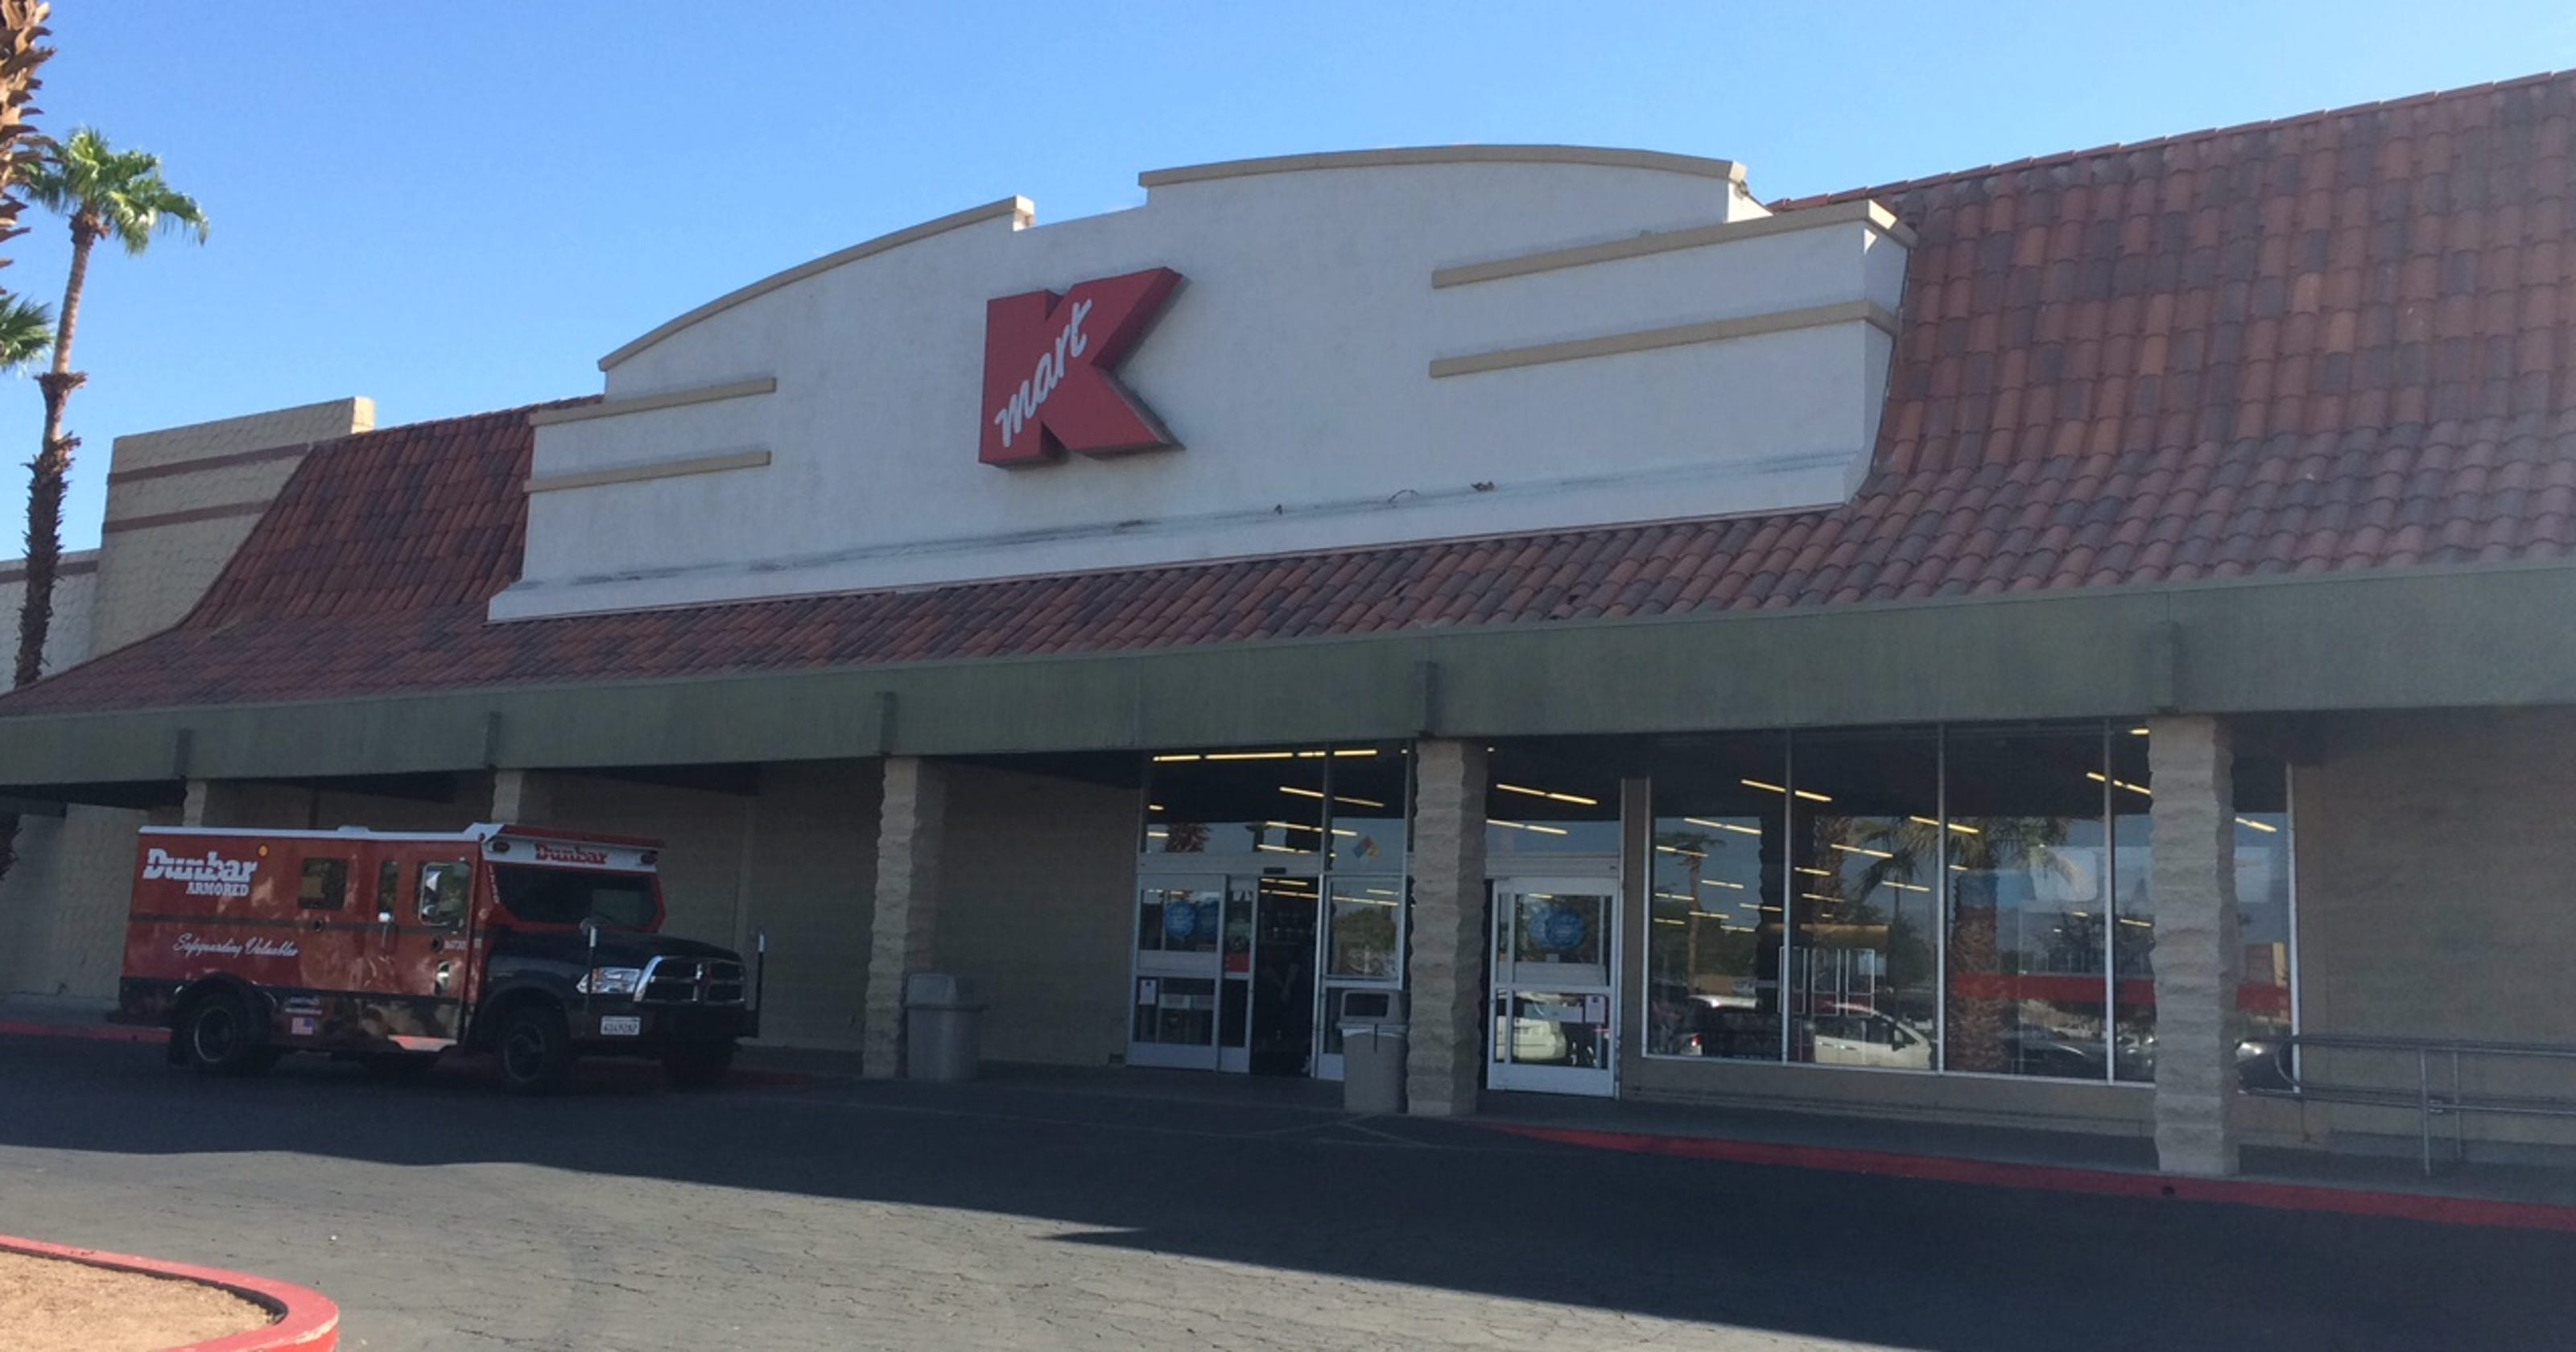 Latino Grocery Store El Super Is Coming To The Former Kmart In Indio